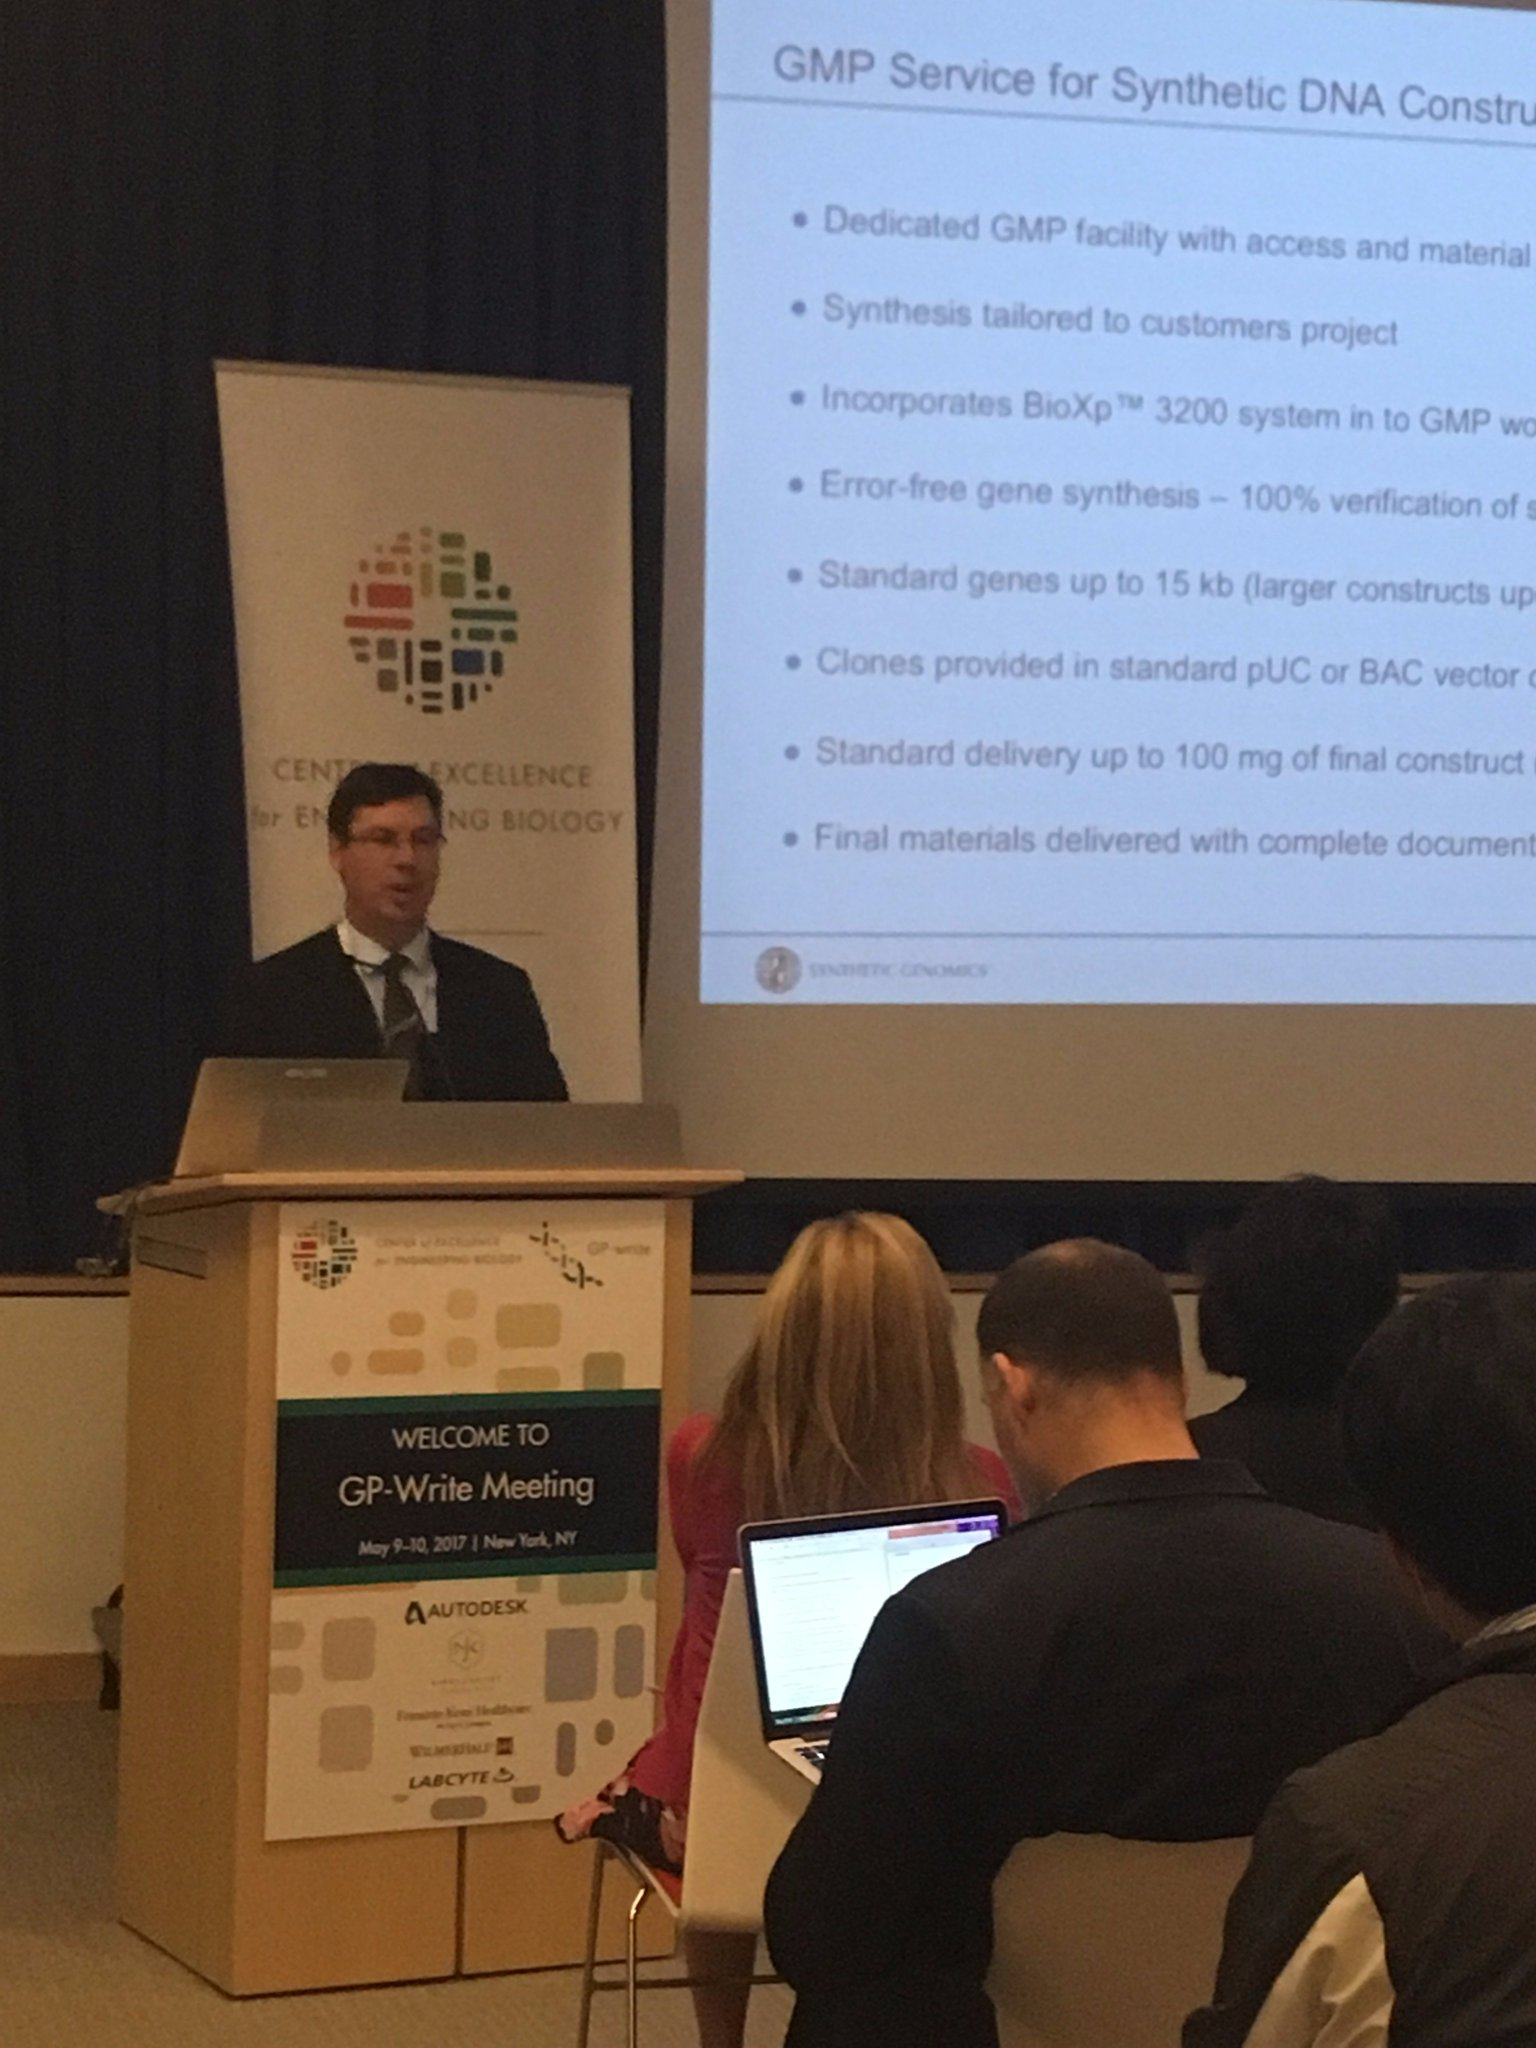 Nathan Wood of @sgi_dna presenting on trends in writing data. #GPwrite https://t.co/daljbQY7Na